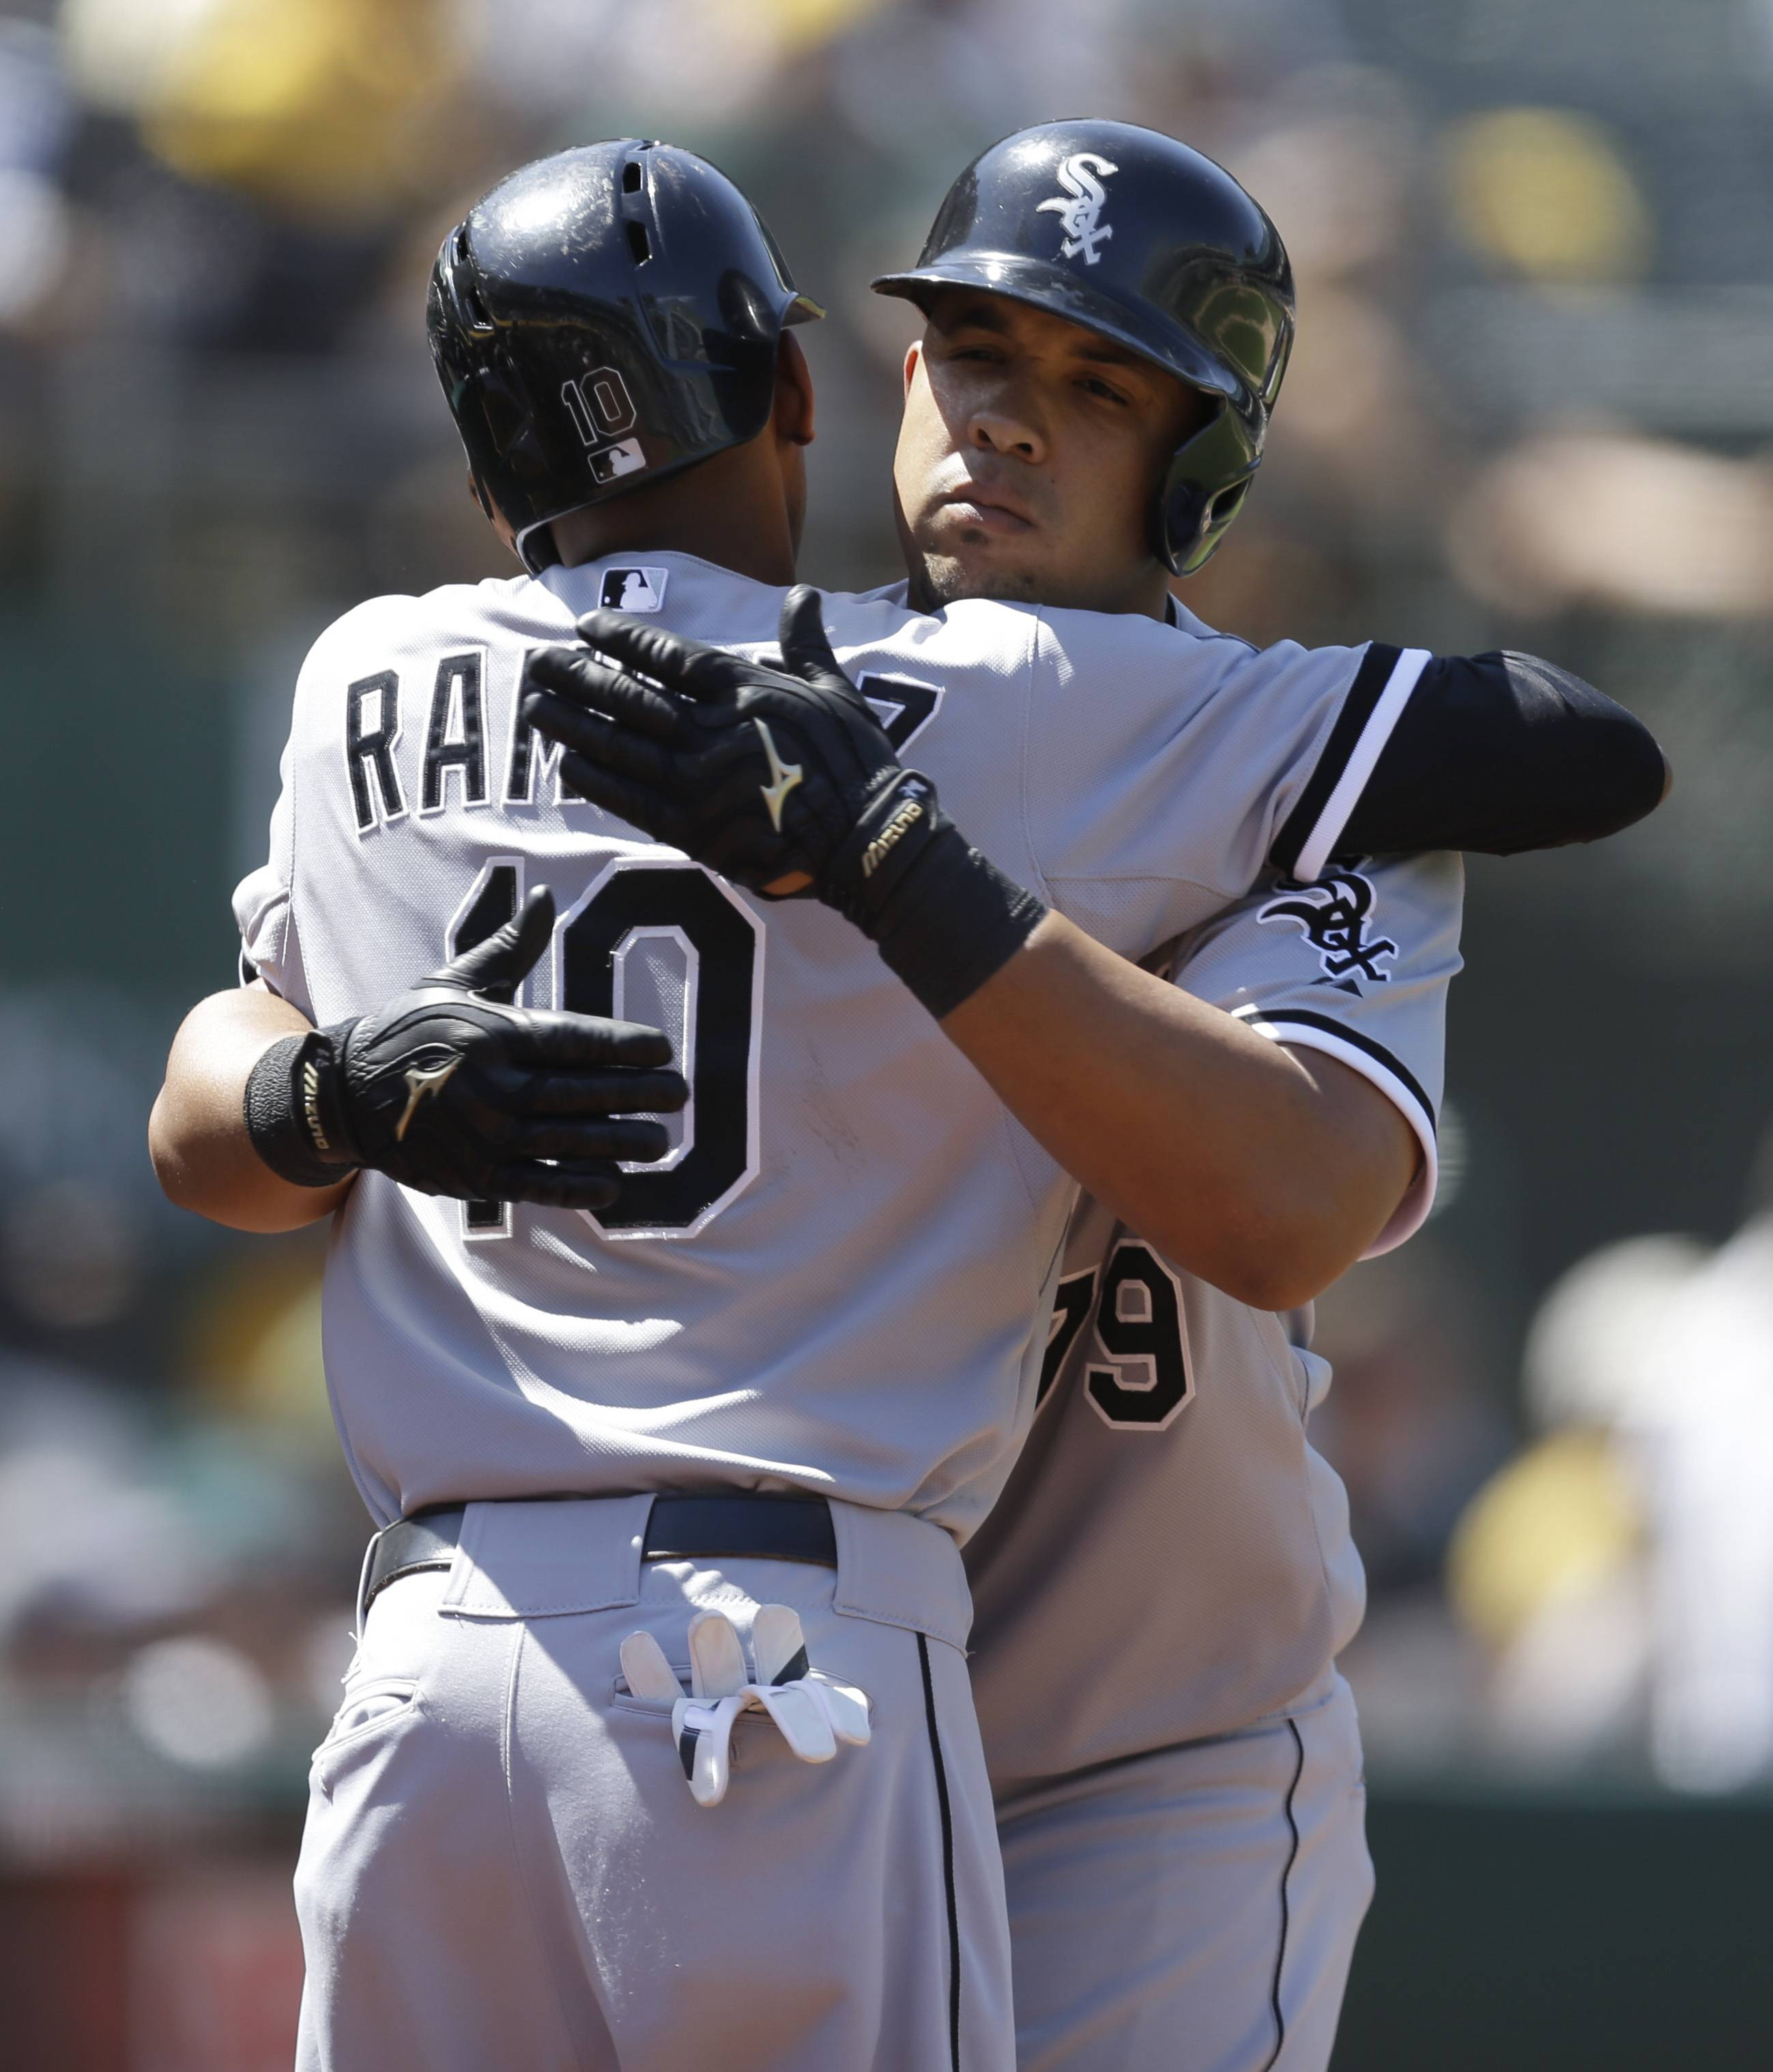 Chicago White Sox's Jose Abreu, right, is embraced by Alexei Ramirez (10) after Abreu hit a three-run home run off Oakland Athletics' Luke Gregerson in the eighth inning of a baseball game Wednesday, May 14, 2014, in Oakland, Calif.